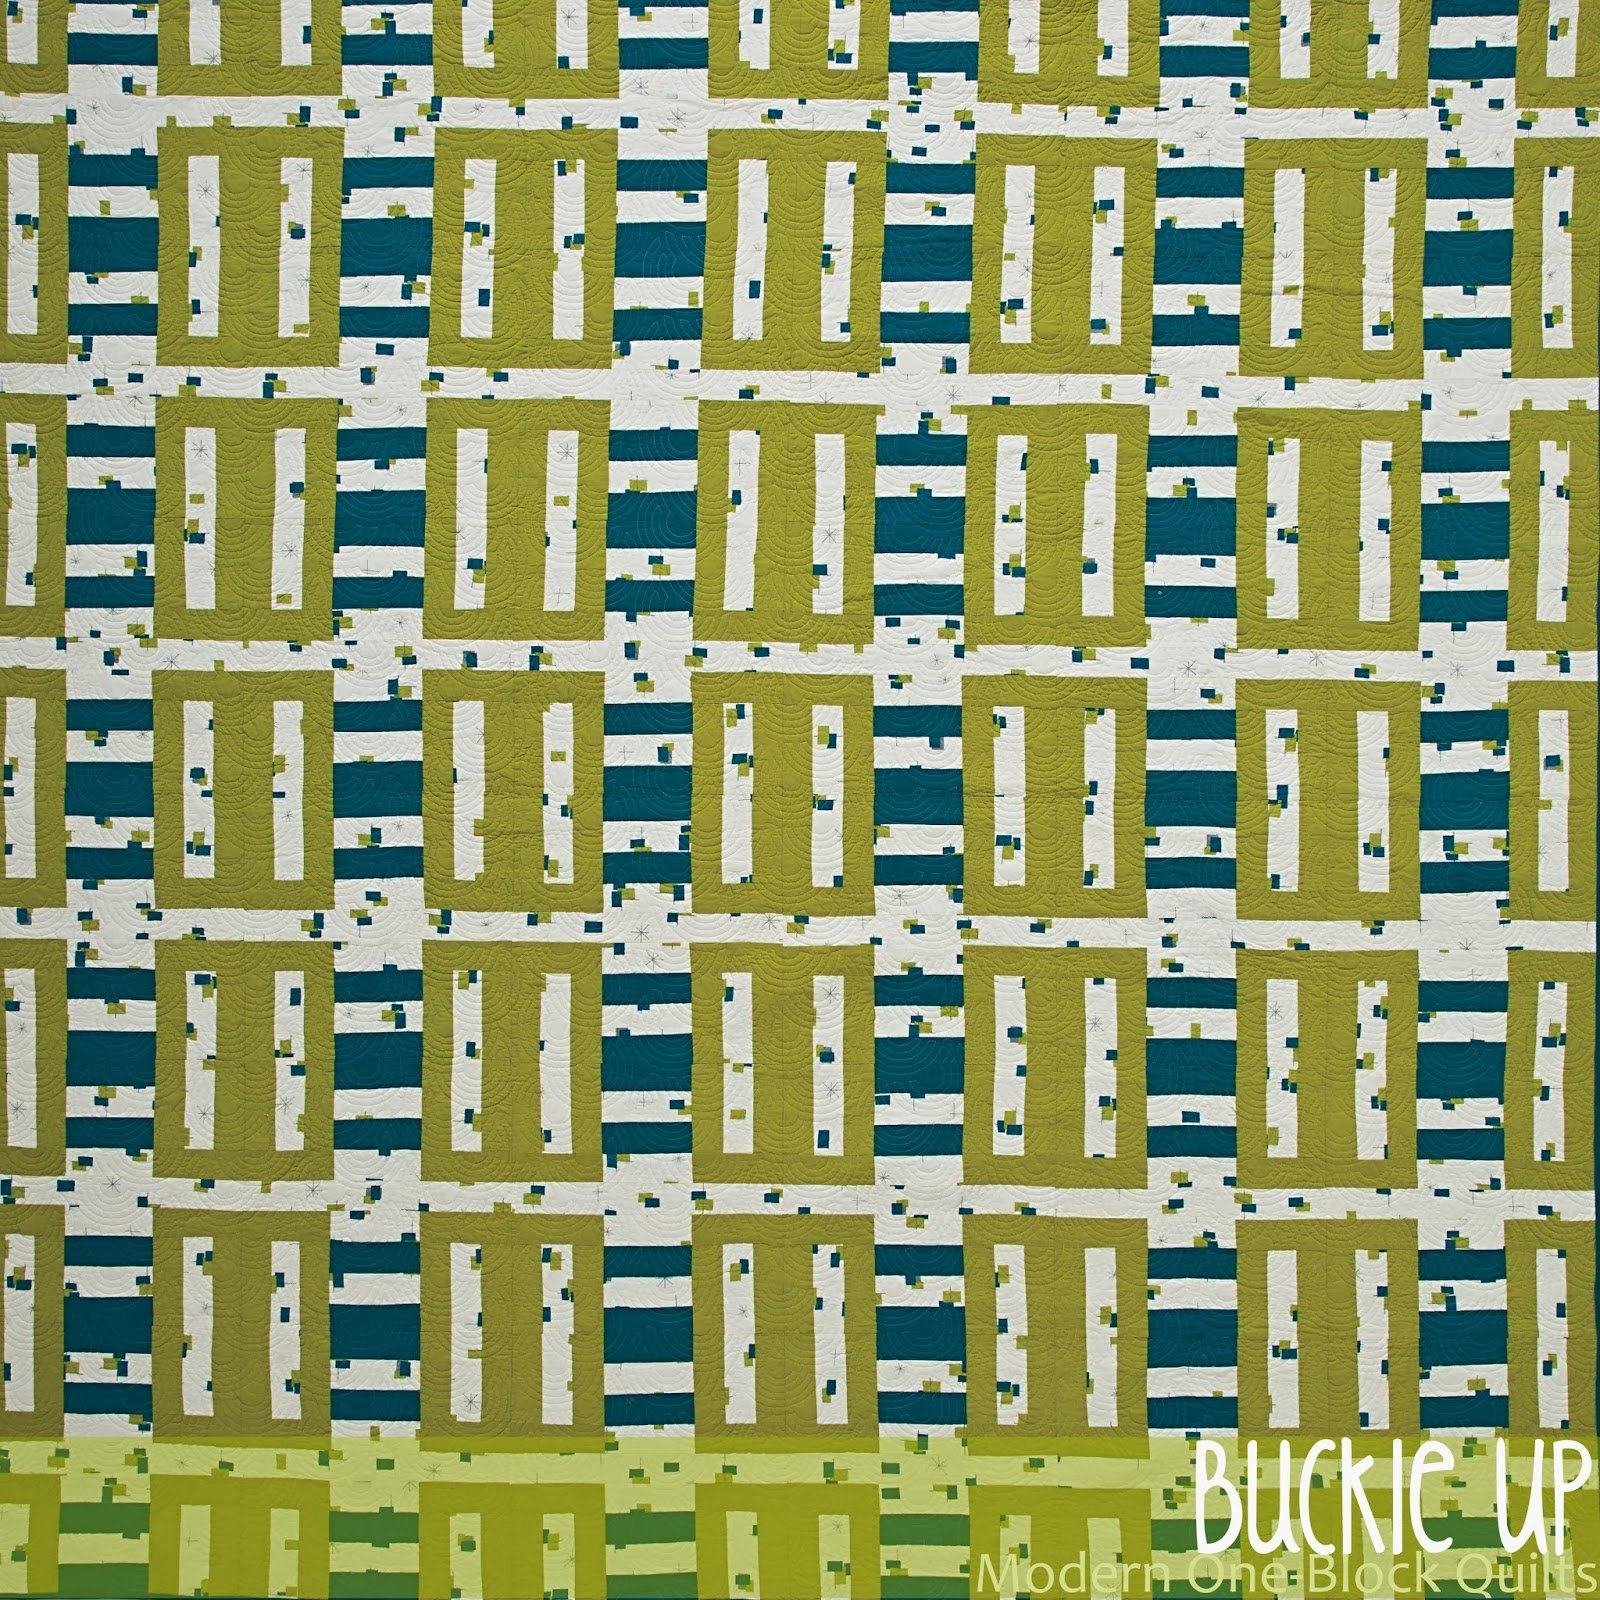 Buckle Up - The Quilt